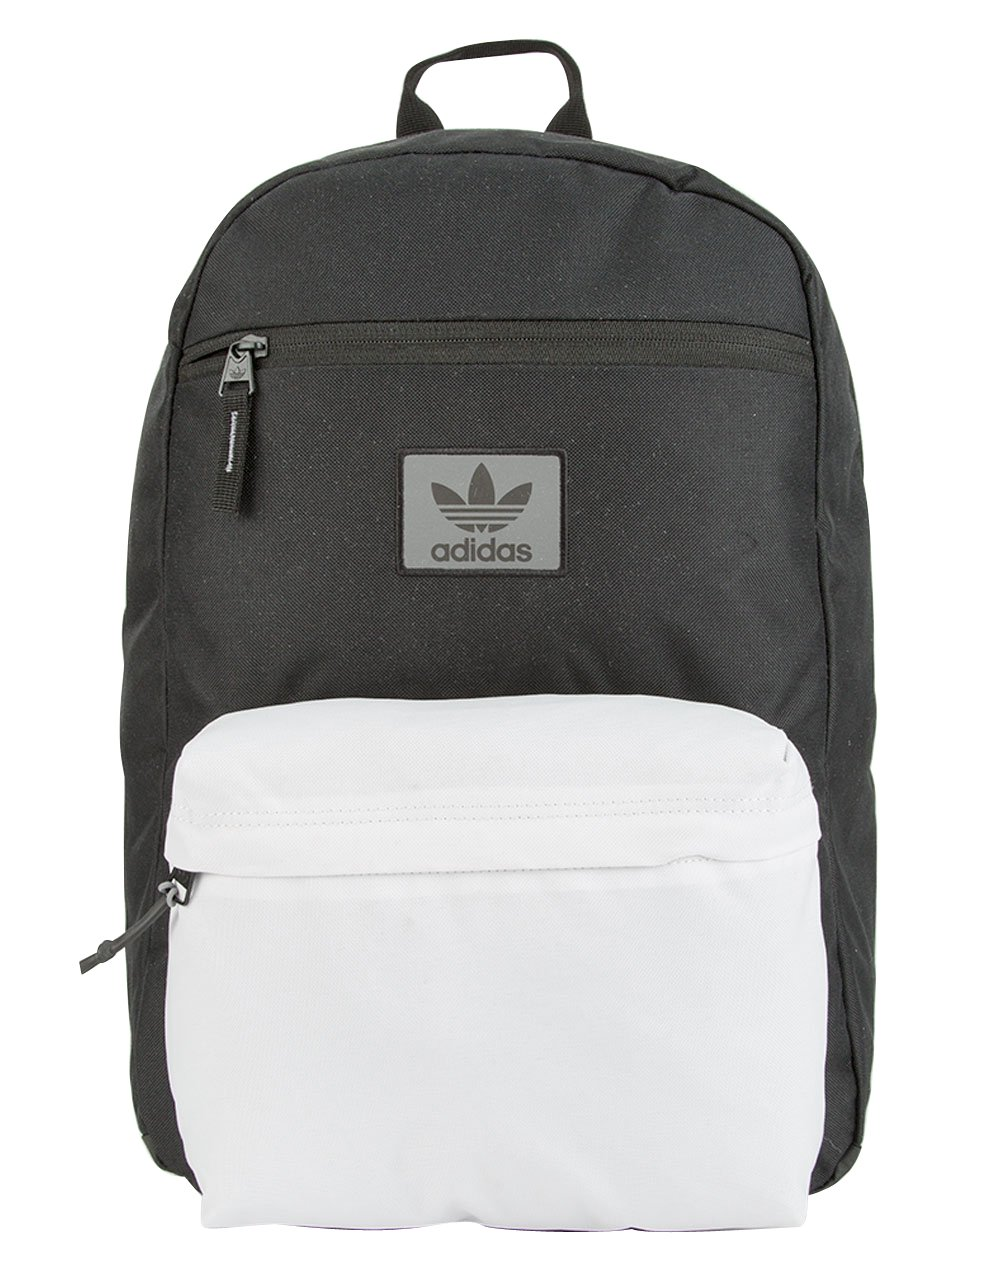 ADIDAS Exclusive Backpack, Black/white by adidas